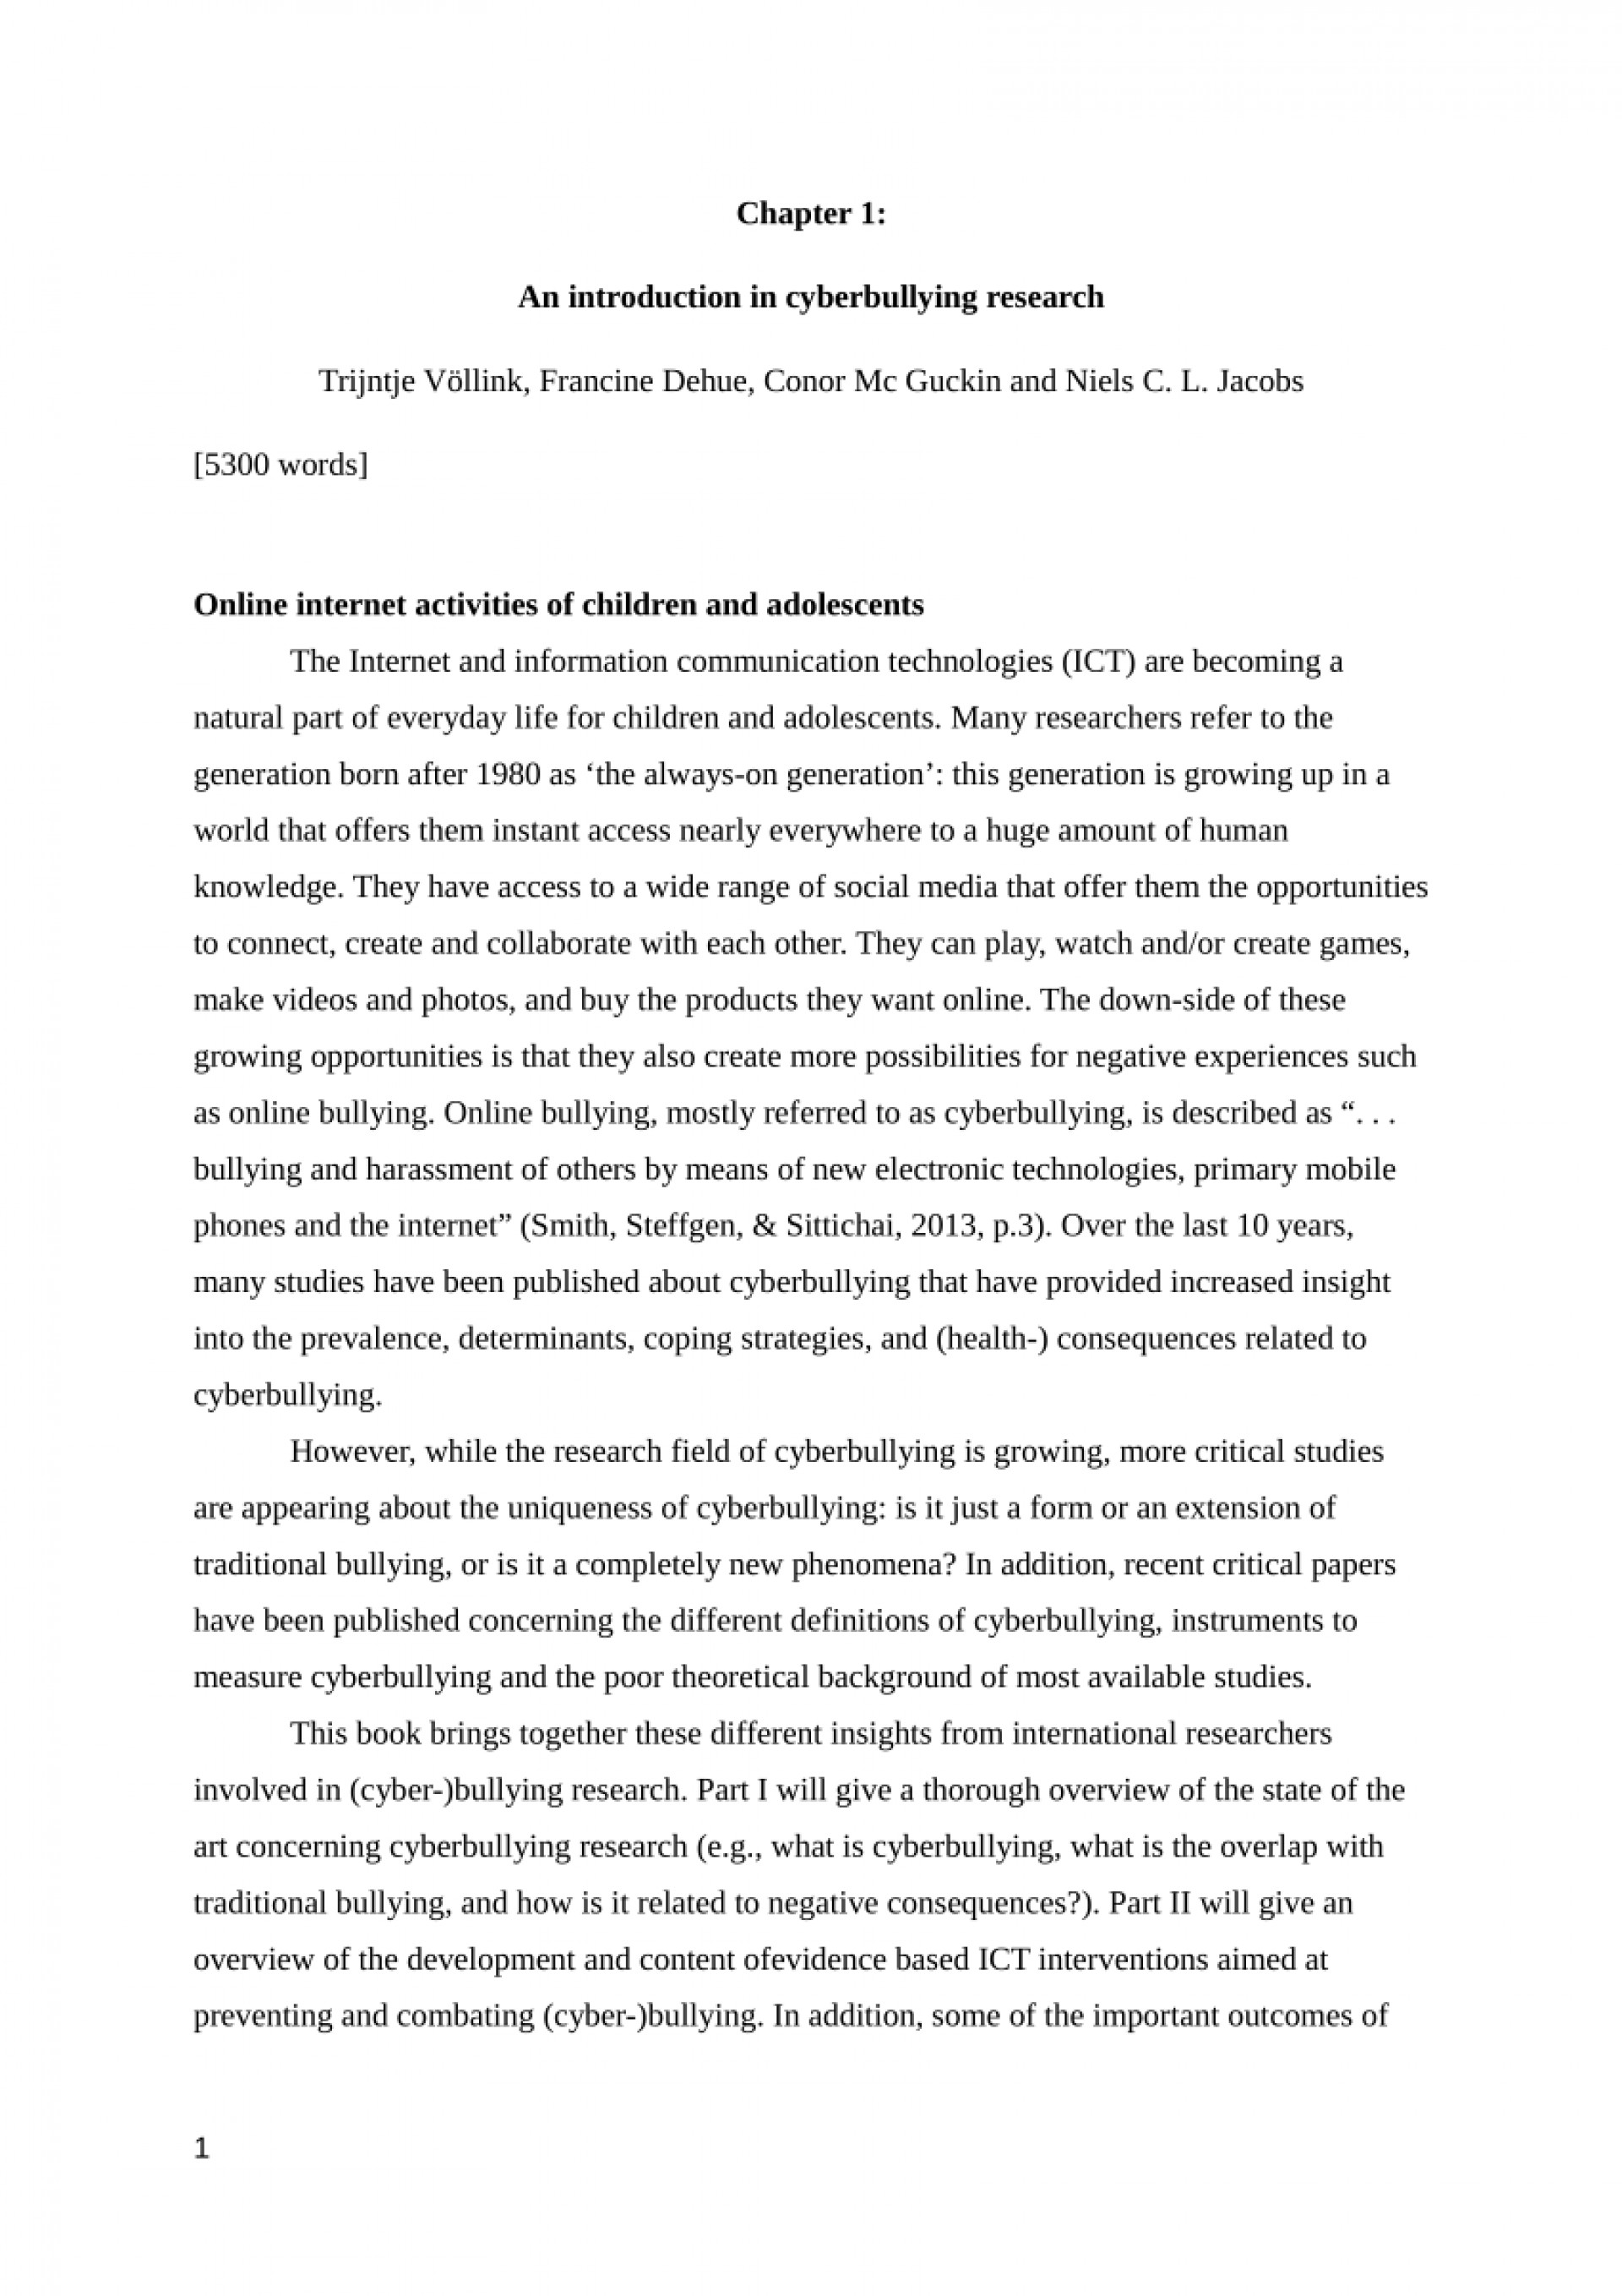 001 Research Paper Largepreview Cyber Phenomenal Bullying Cyberbullying Chapter 1 Pdf 1920